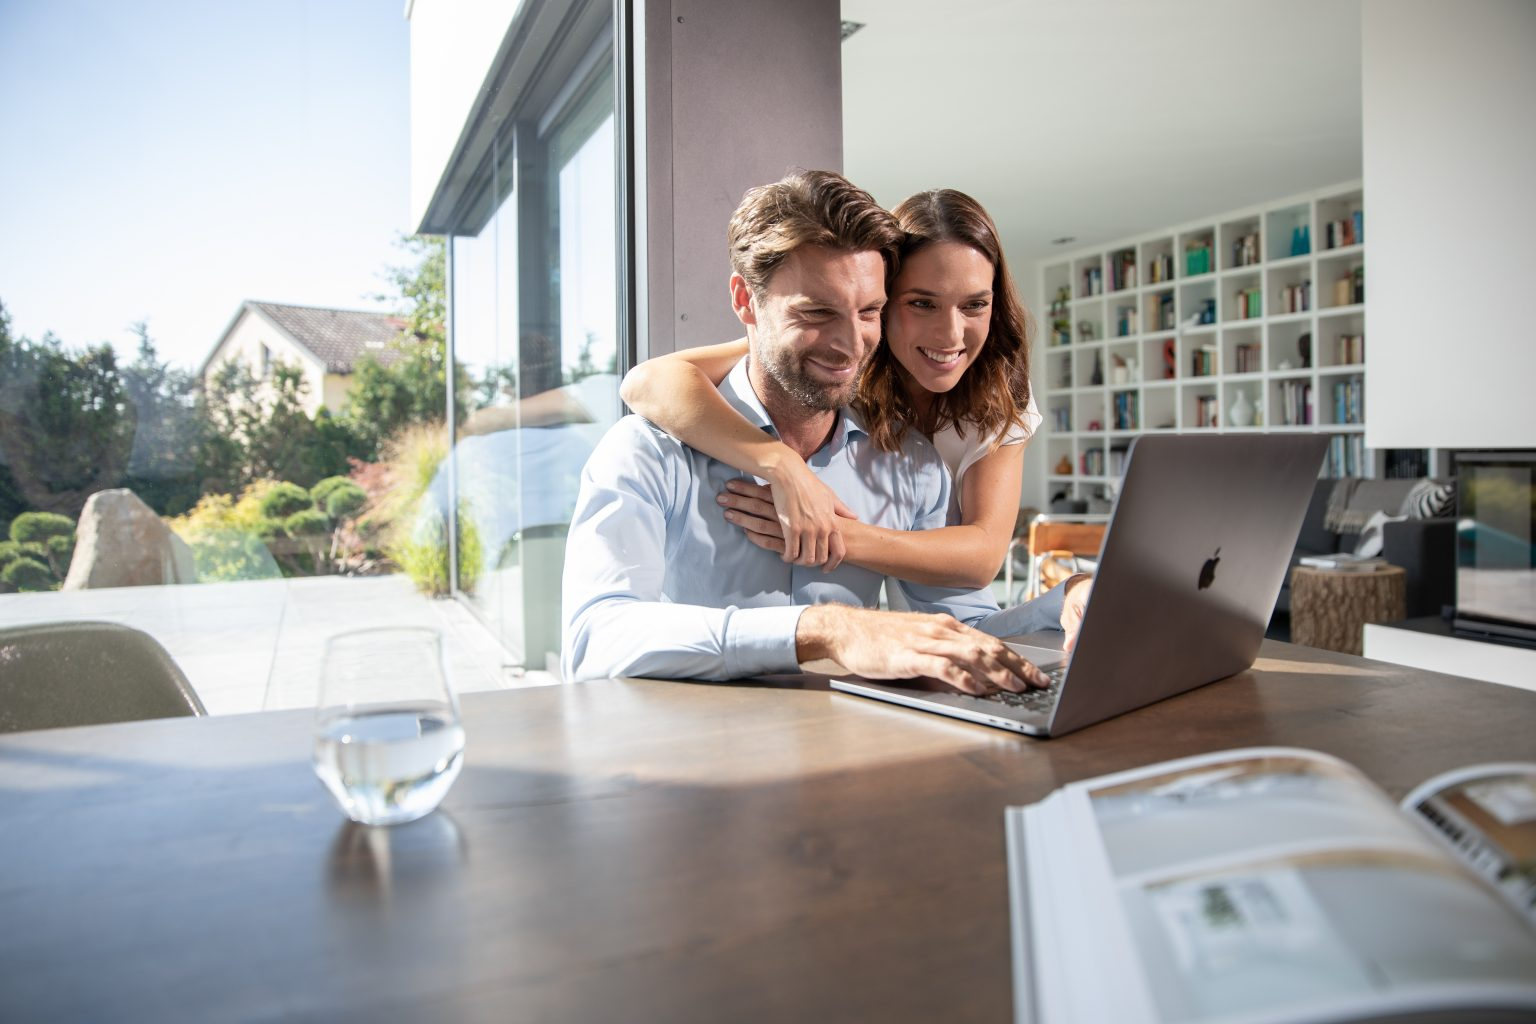 Woman embracing man working from home